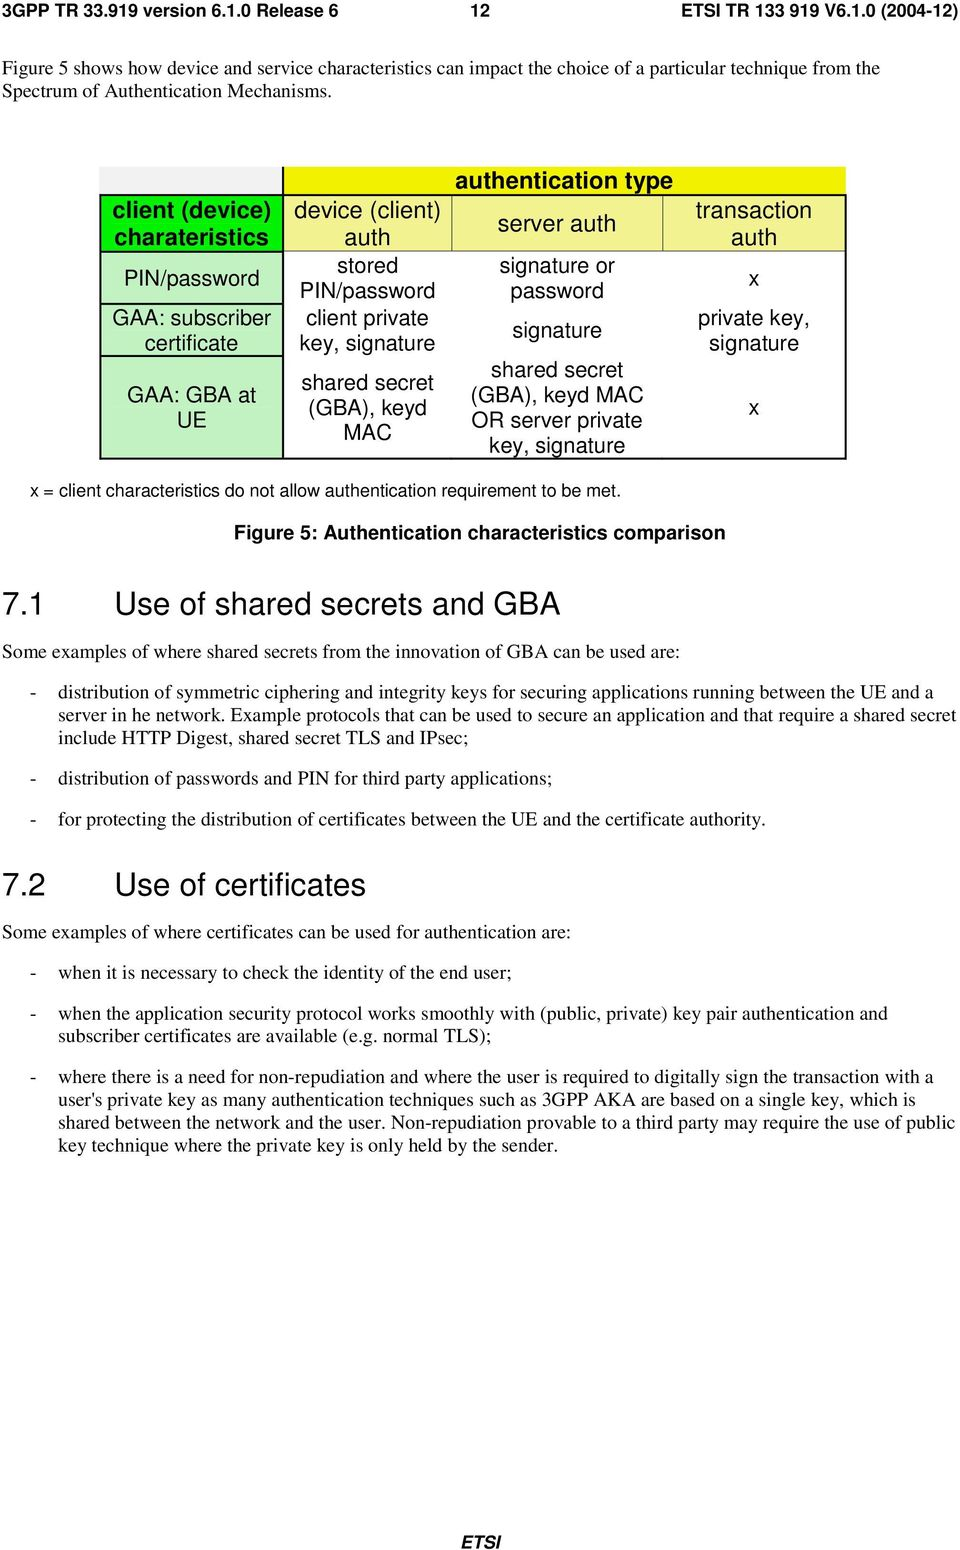 authentication type server auth signature or password signature shared secret (GBA), keyd MAC OR server private key, signature transaction auth x private key, signature x x = client characteristics